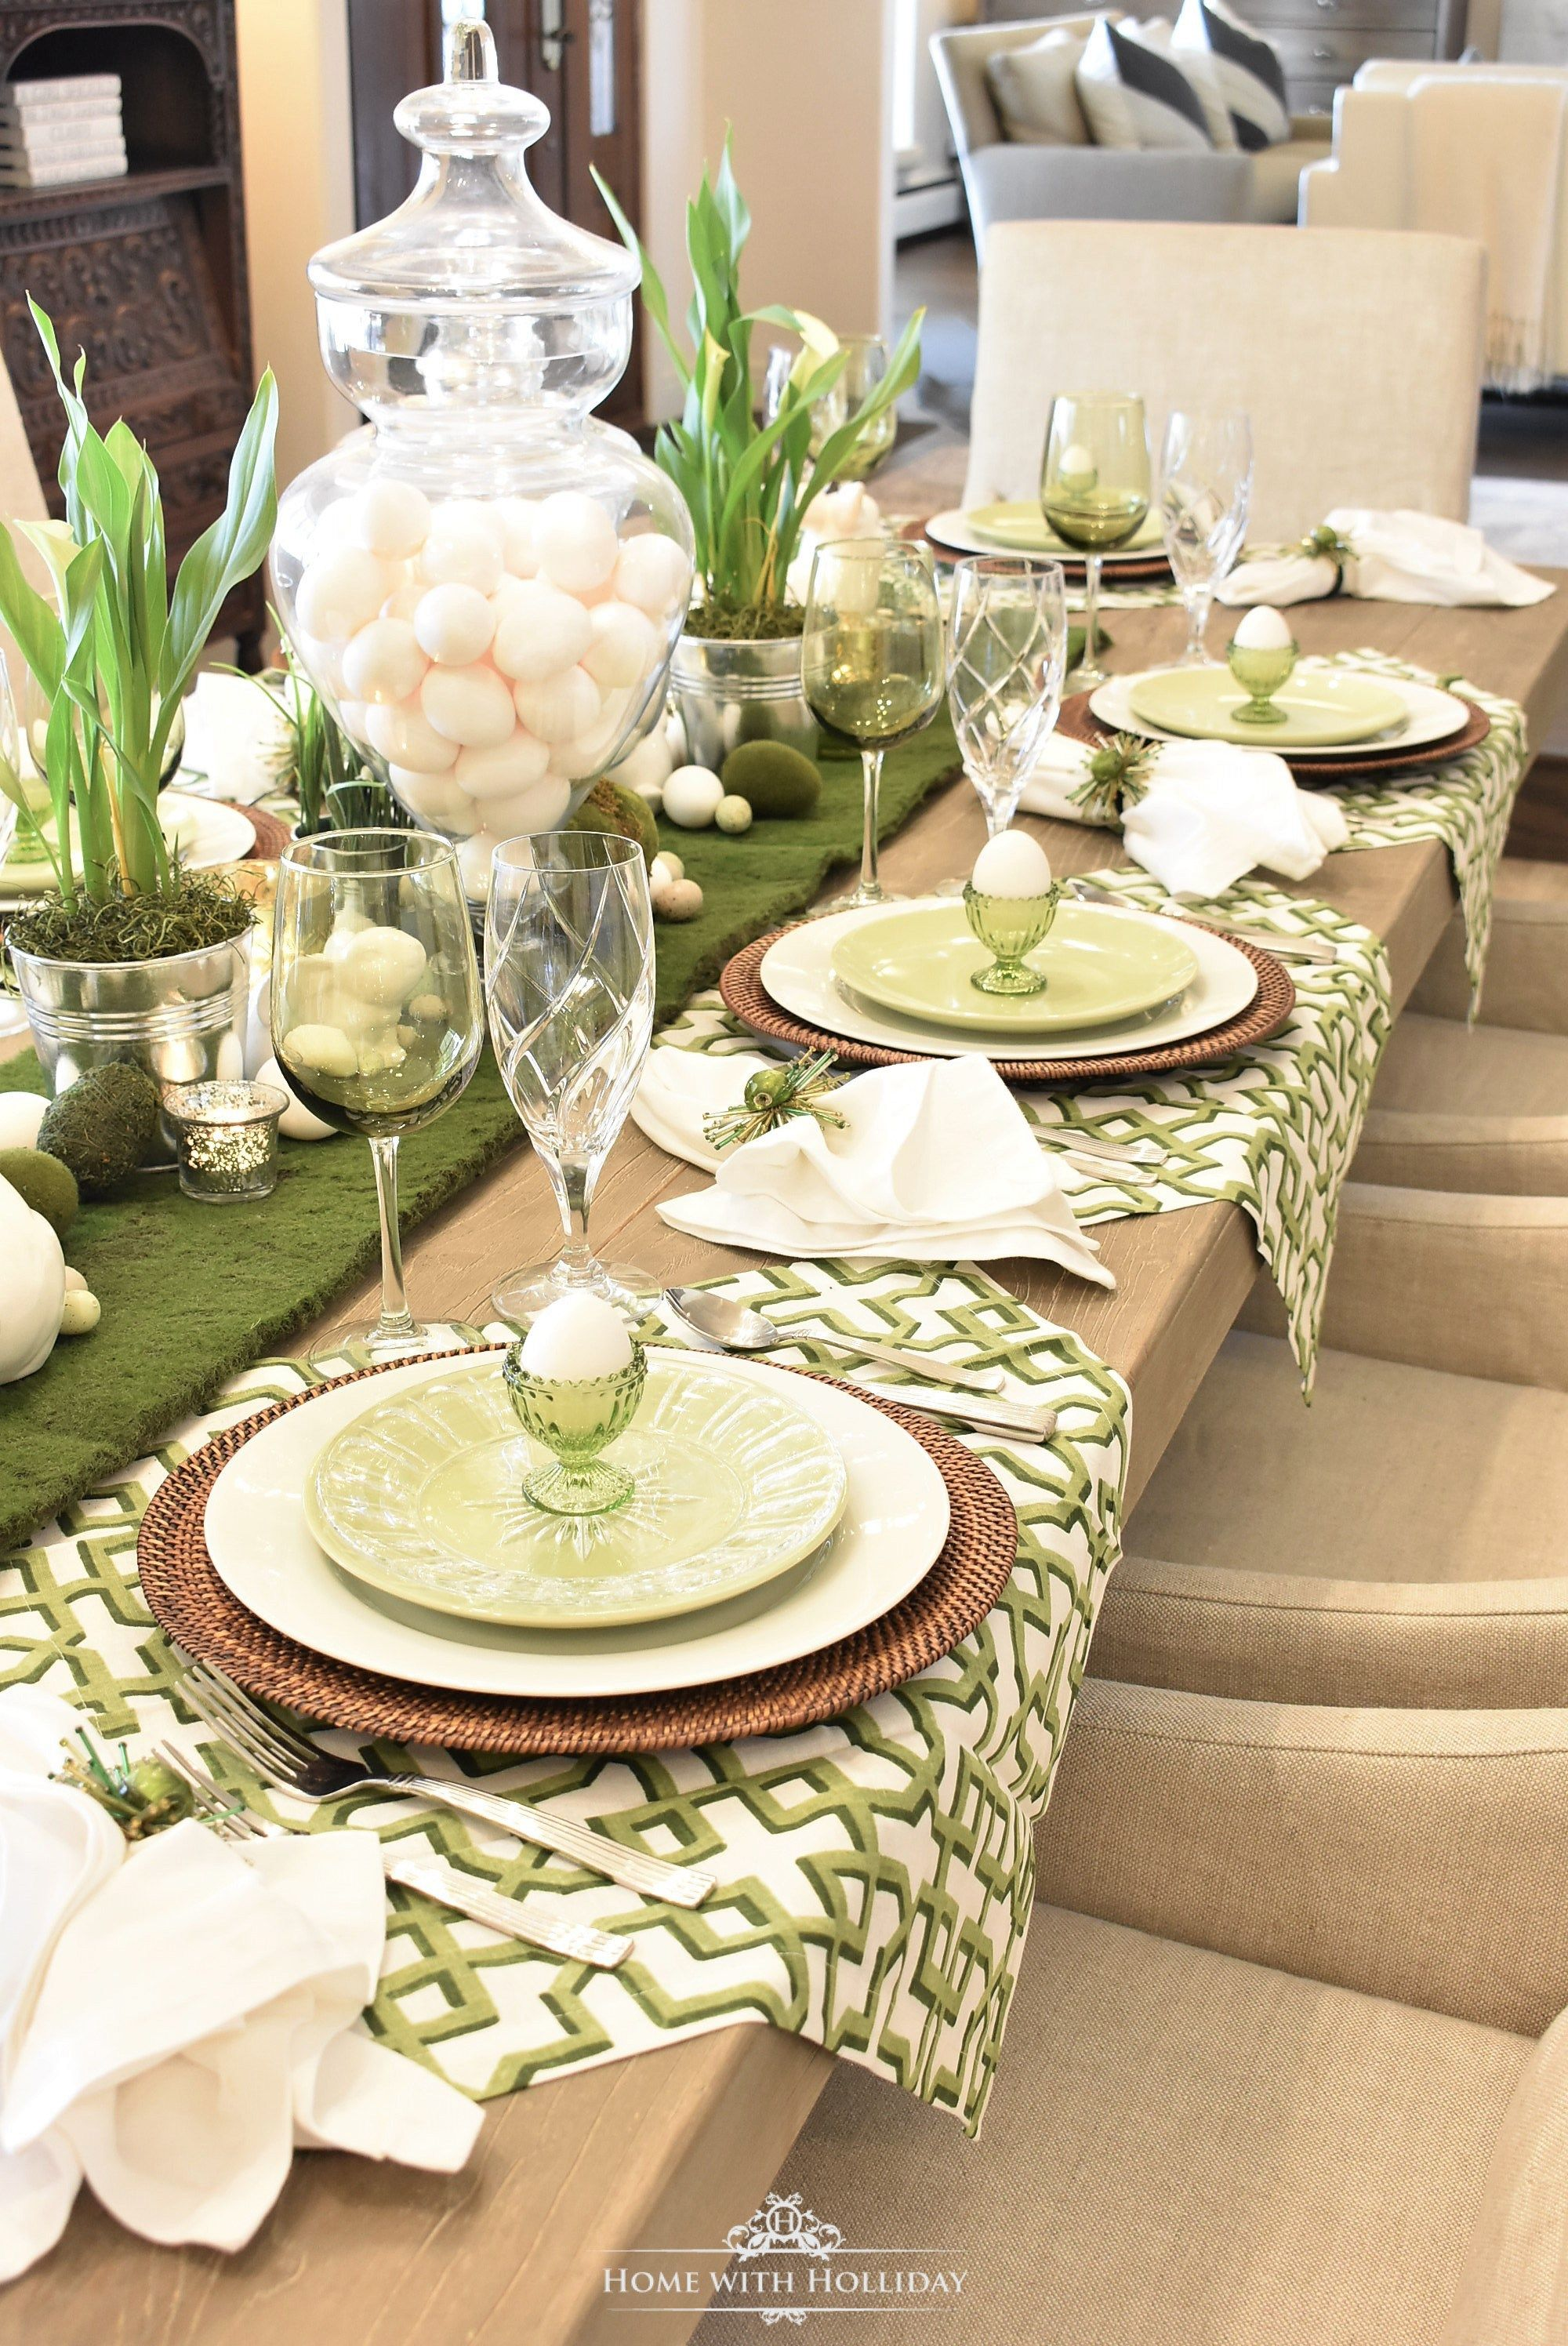 Ordinaire Green And White Easter Table Setting   Home With Holliday